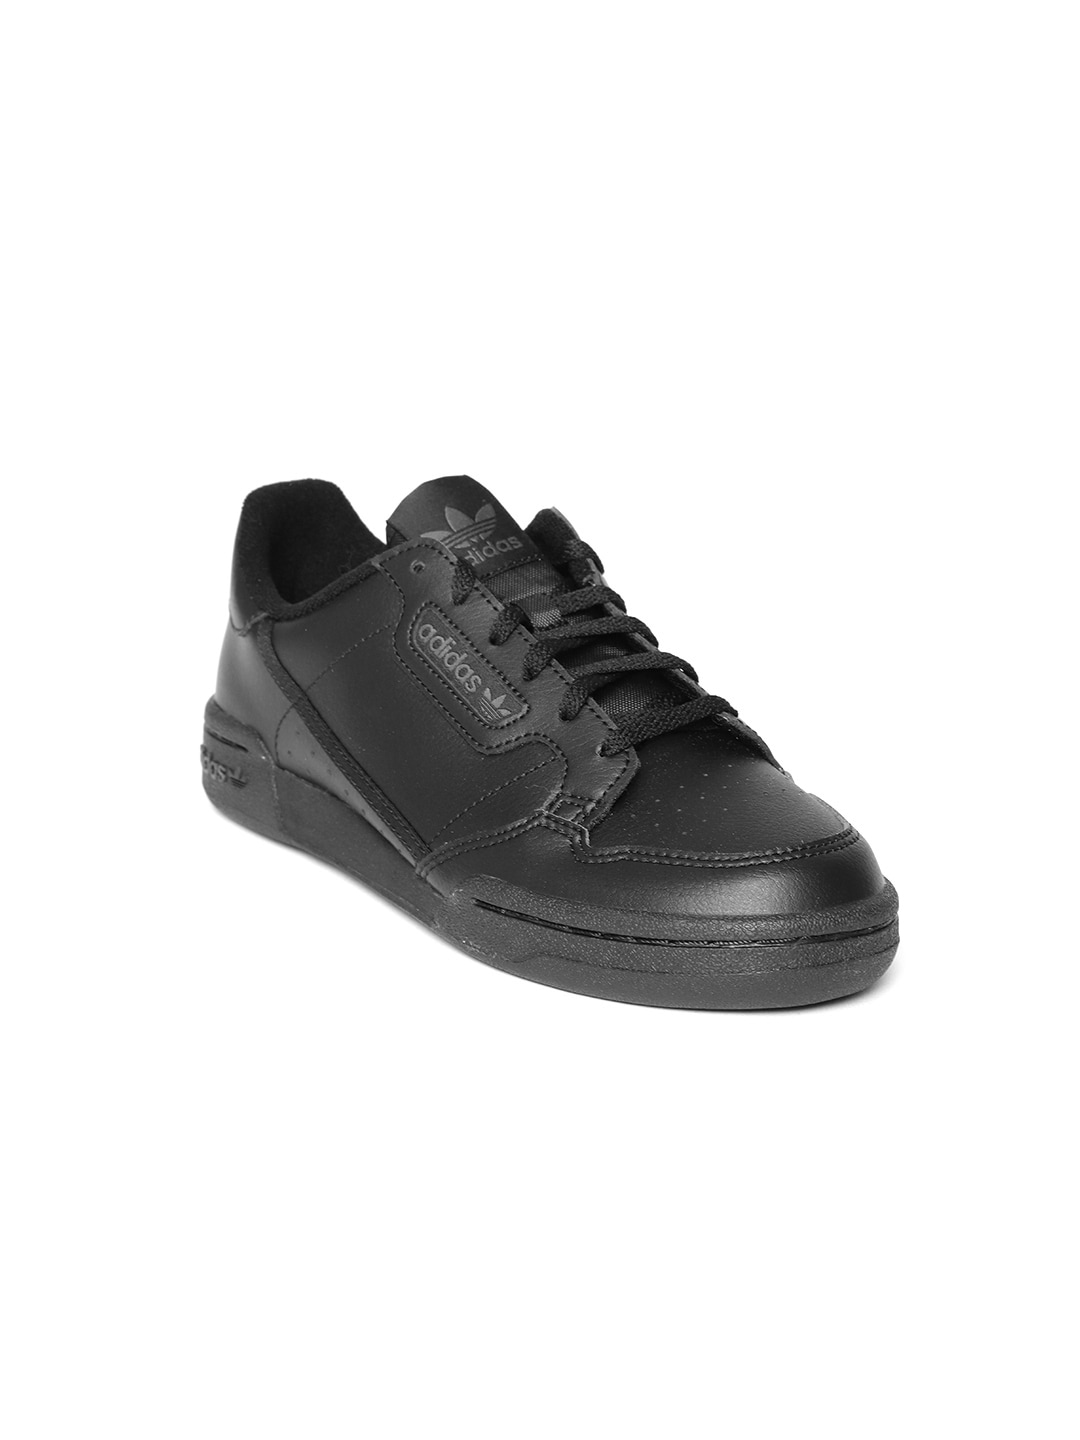 56b9000f5e466a School Shoes - Buy School Shoes Online in India